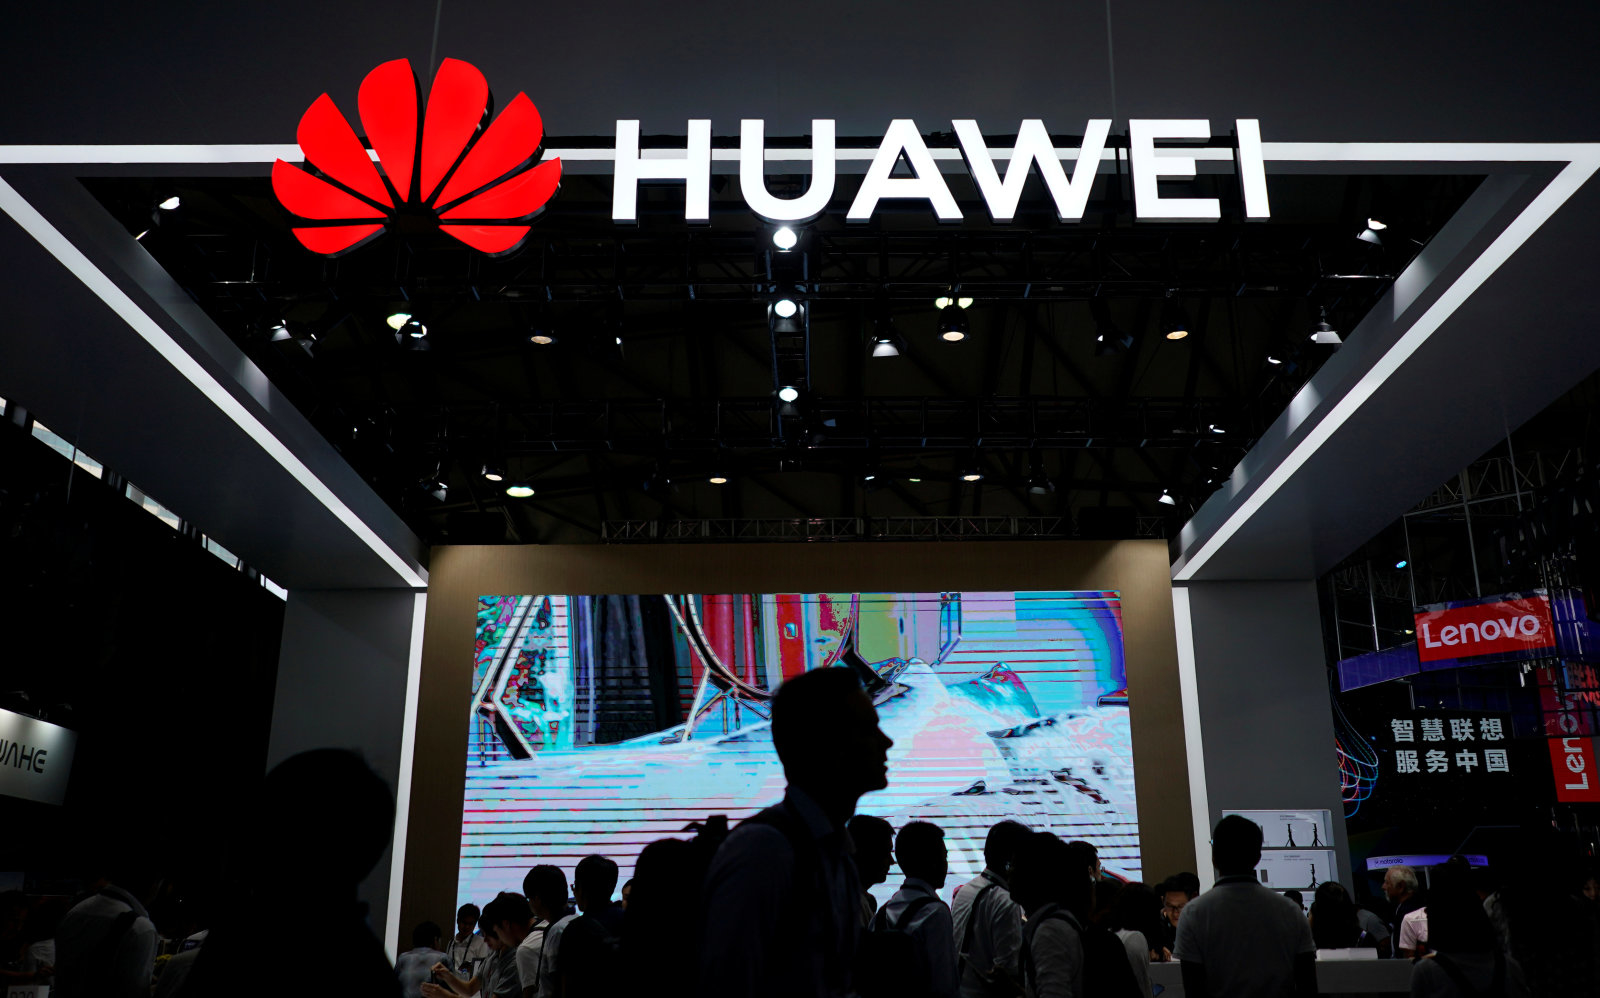 People walk past a sign board of Huawei at CES (Consumer Electronics Show) Asia 2018 in Shanghai, China June 14, 2018. REUTERS/Aly Song